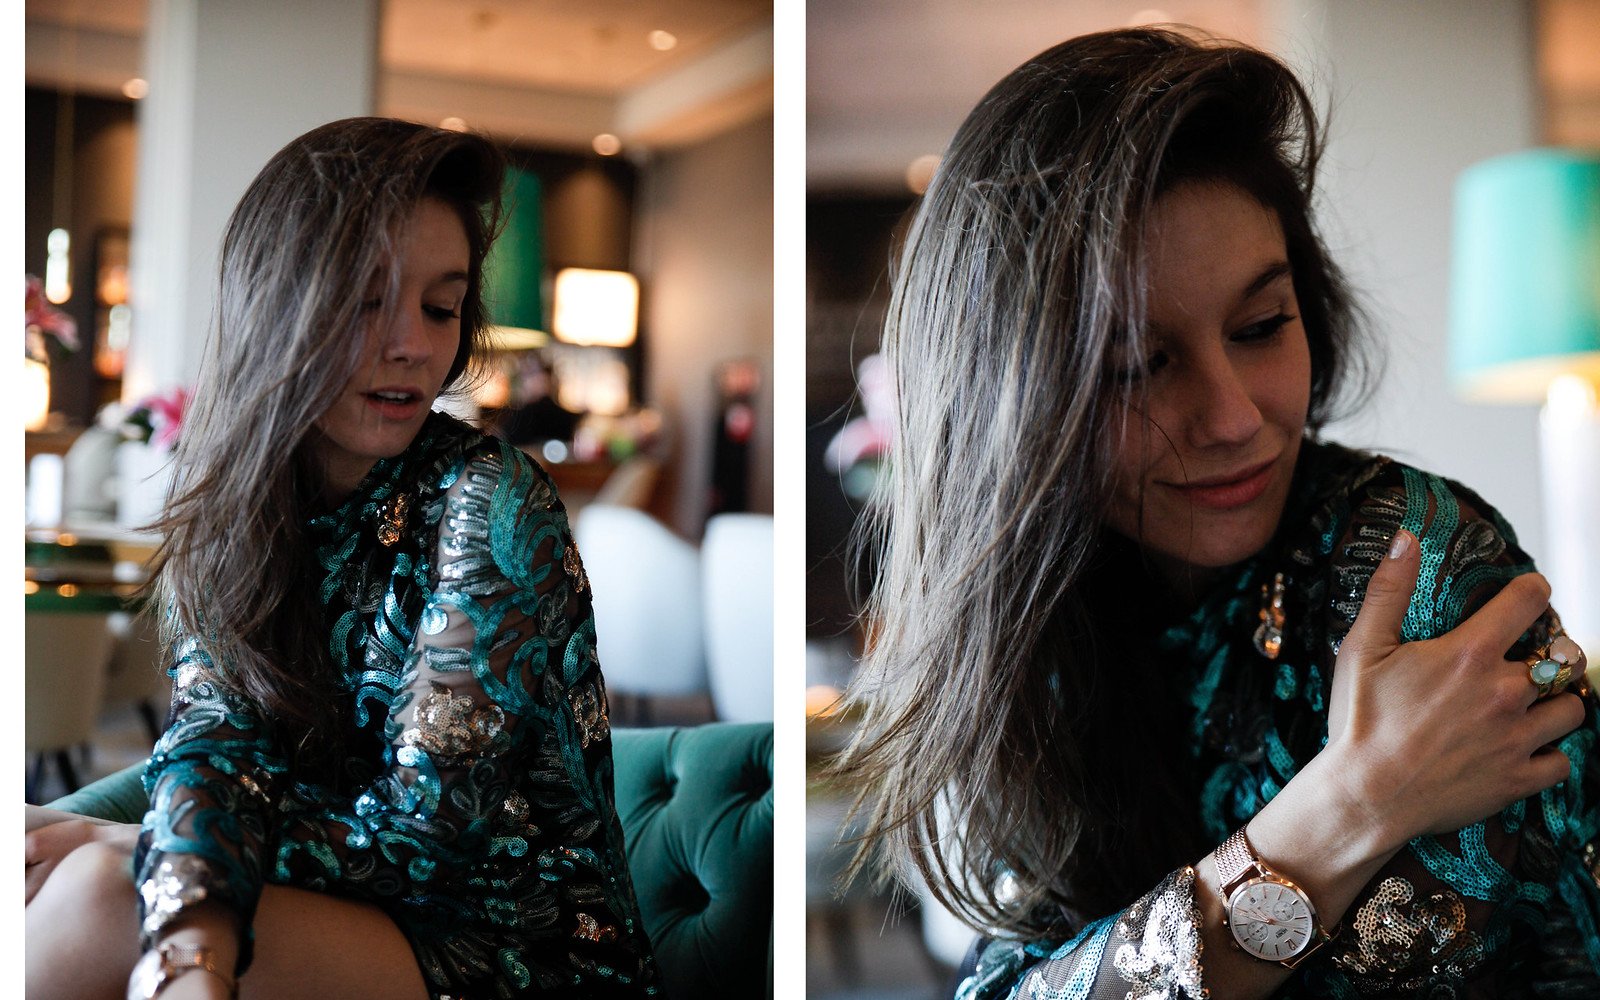 012_Green_sequins_dress_outfit_the_guest_girl_theguestgirl_laura_santolaria_fashion_blogger_danity_paris_influencer_barcelona